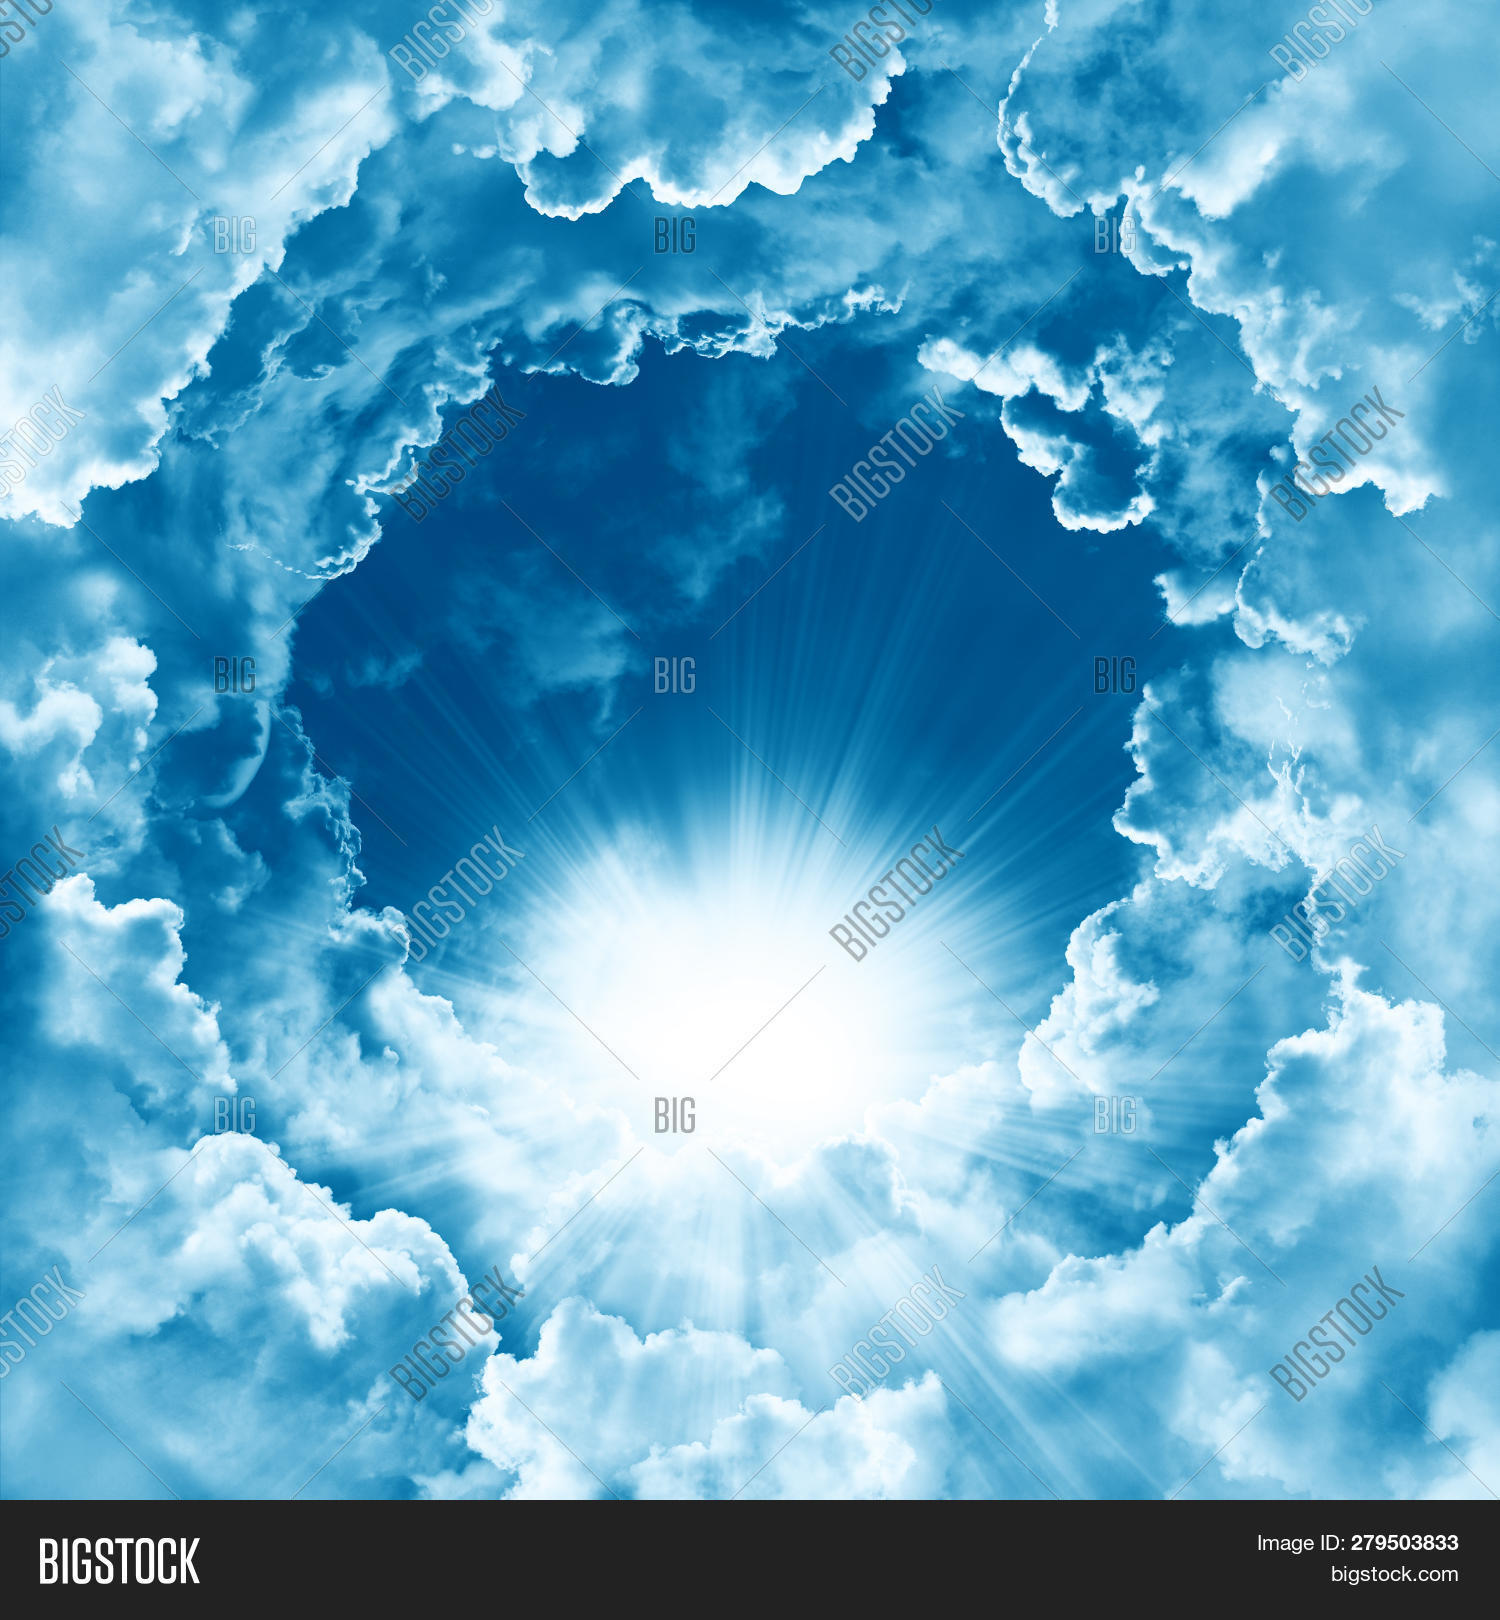 above,air,atmosphere,awe,background,beams,beautiful,beauty,blue,bright,brightly,calm,climate,cloud,cloudscape,cloudy,color,cumulus,day,daylight,divine,fantasy,god,heaven,high,light,meteorology,mysterious,natural,nature,overcast,oxygen,ozone,peace,peaceful,pure,religion,religious,shine,shiny,sky,spiritual,storm,sun,sunbeam,sunlight,sunrise,sunset,weather,white